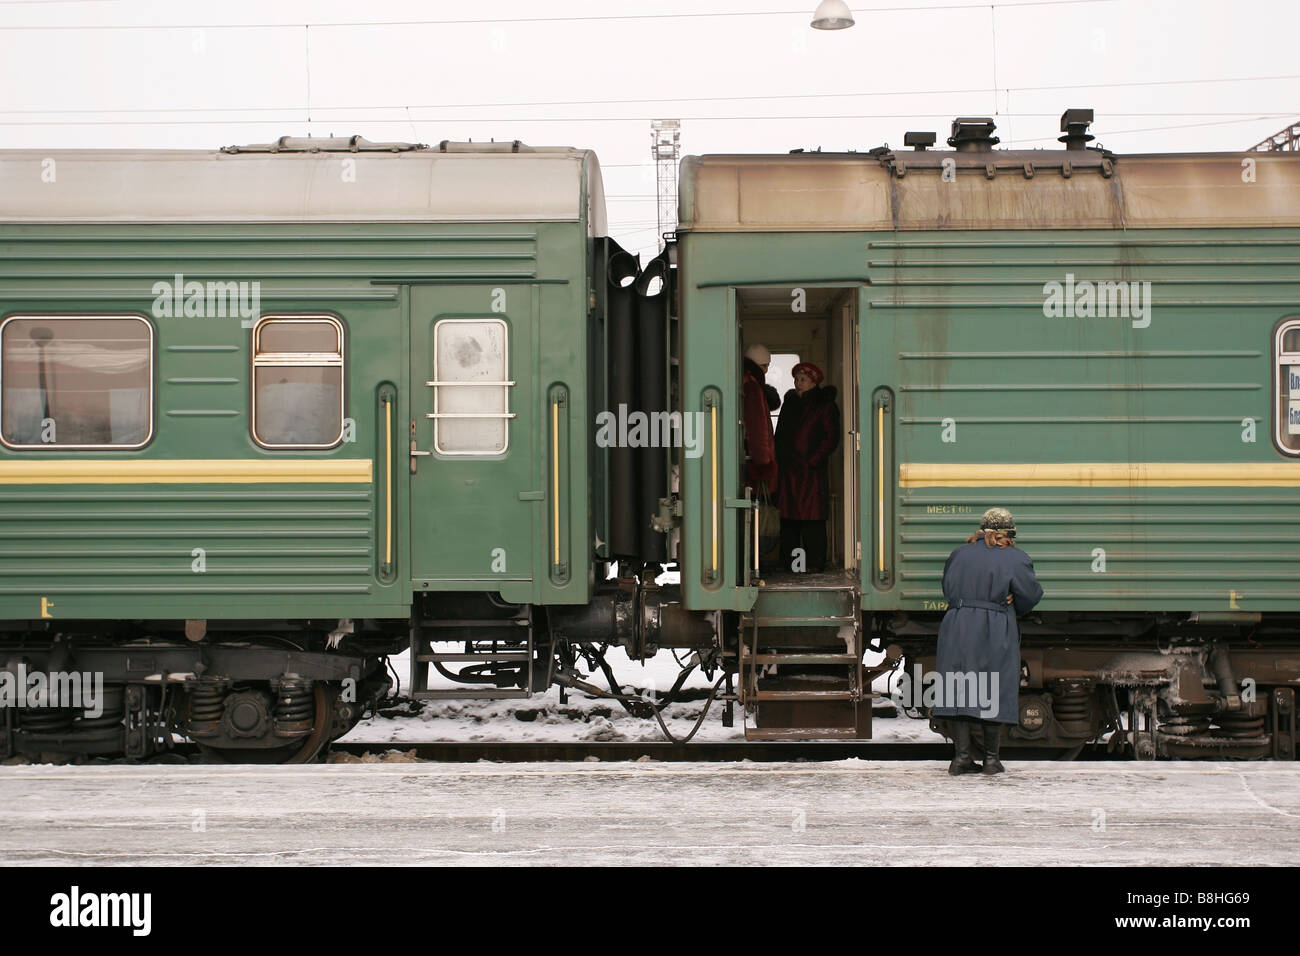 Transsiberian train at the trainstation in Khabarovsk - Stock Image